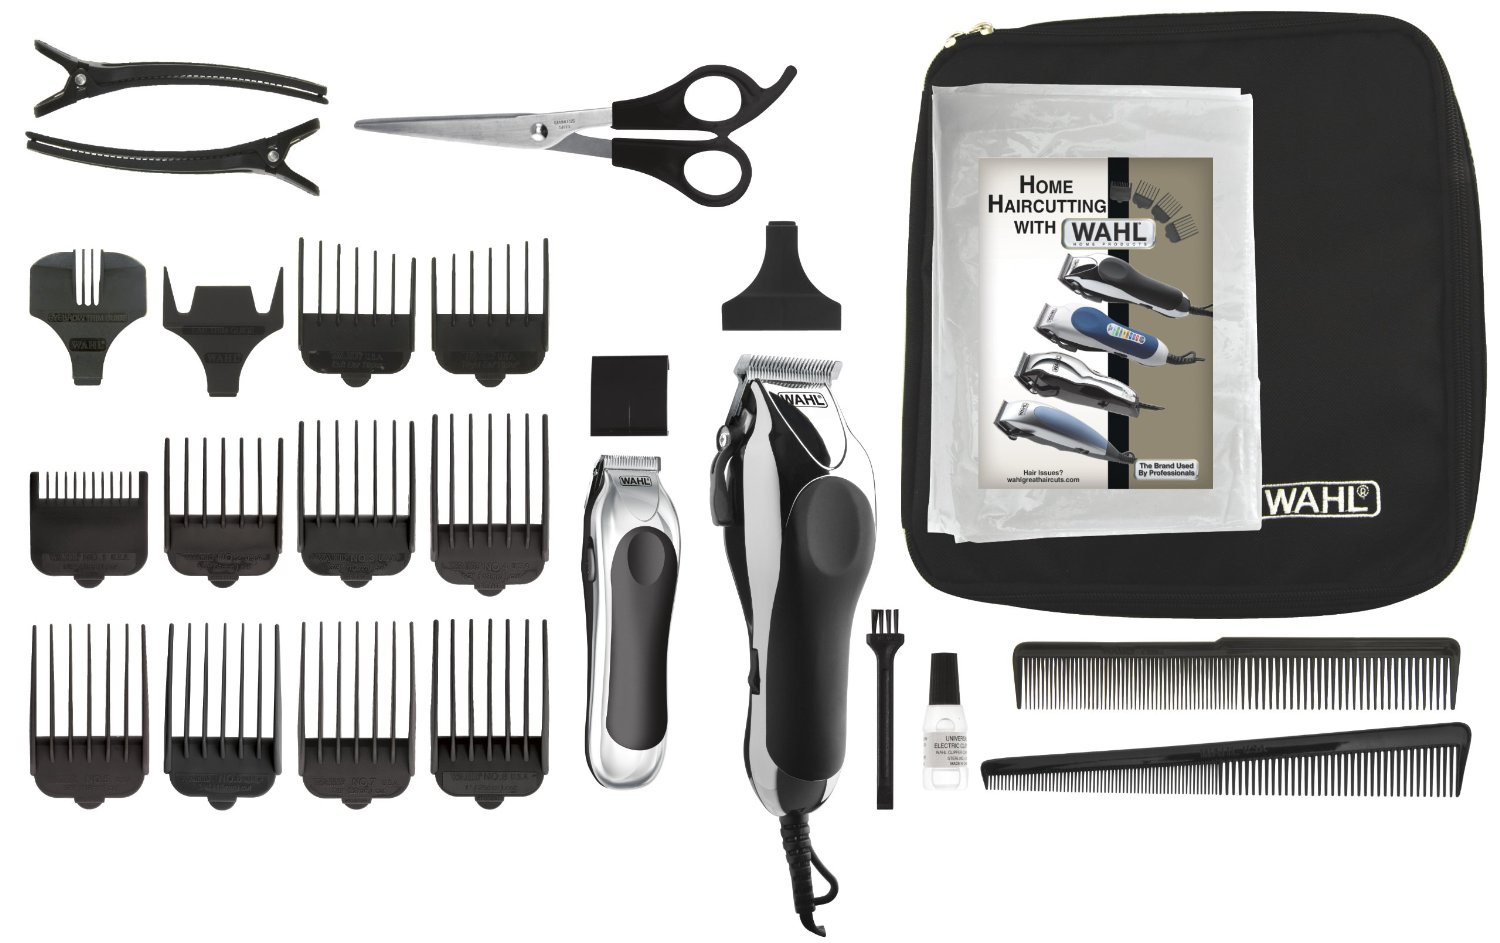 Wahl Deluxe Chrome Pro 25 piece Haircutting Kit 22H-023-79524/5201